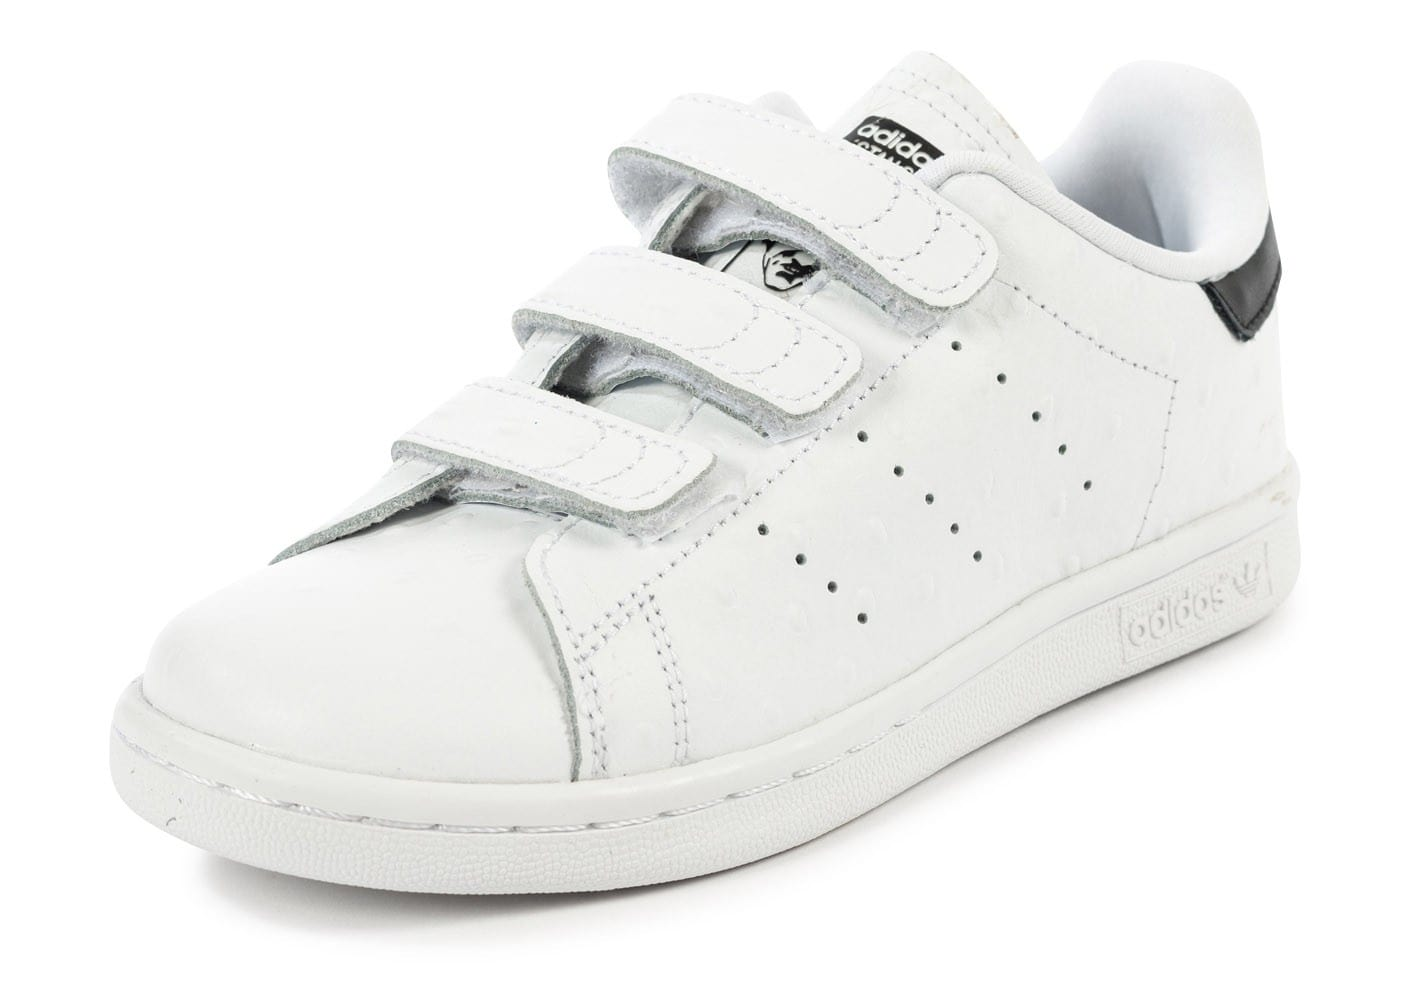 soldes adidas stan smith cf enfant blanche et noire chaussures adidas chausport. Black Bedroom Furniture Sets. Home Design Ideas